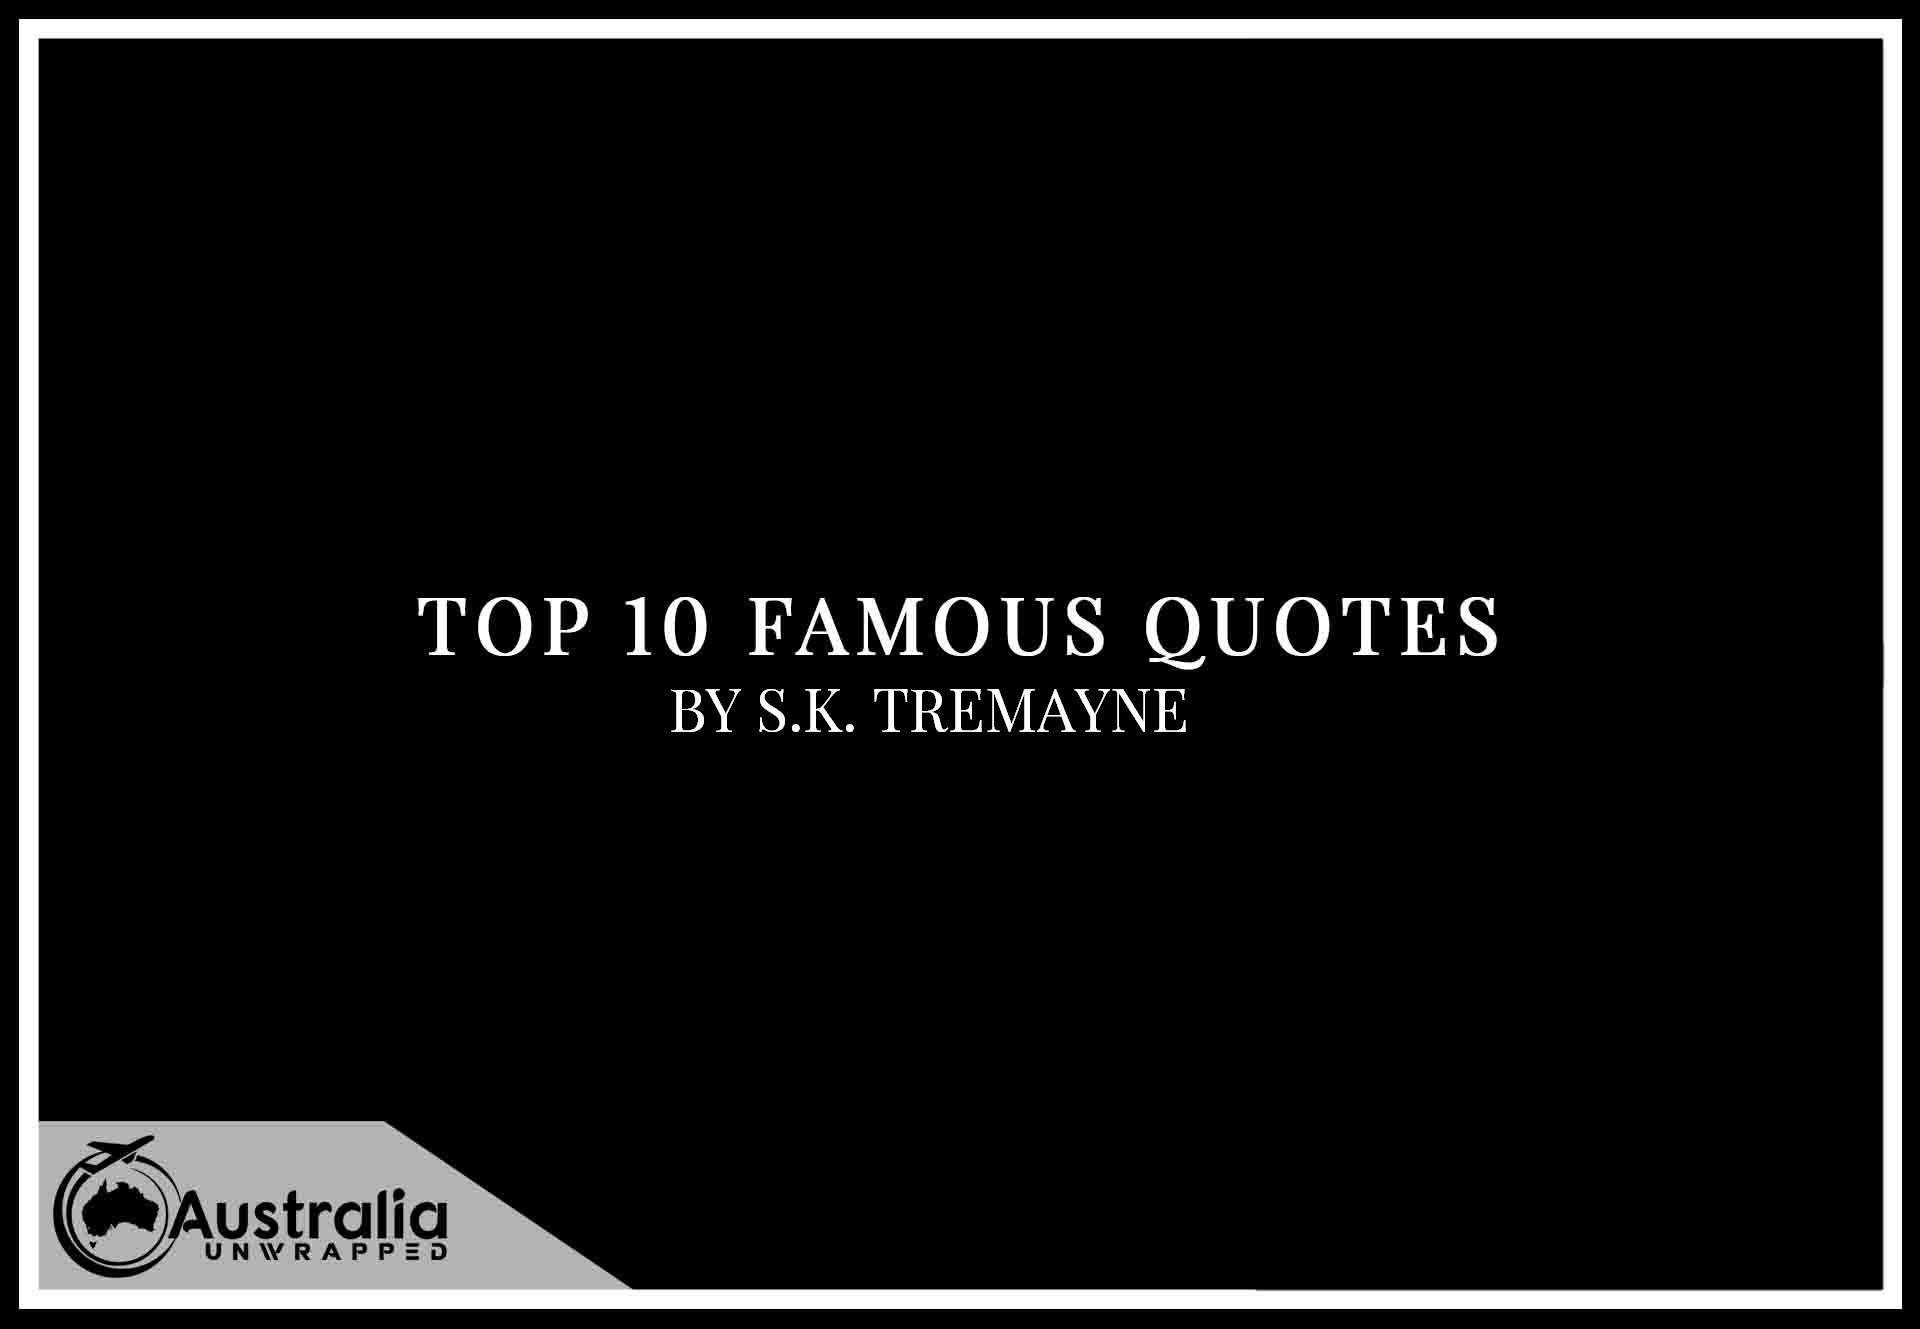 Top 10 Famous Quotes by Author S.K. Tremayne